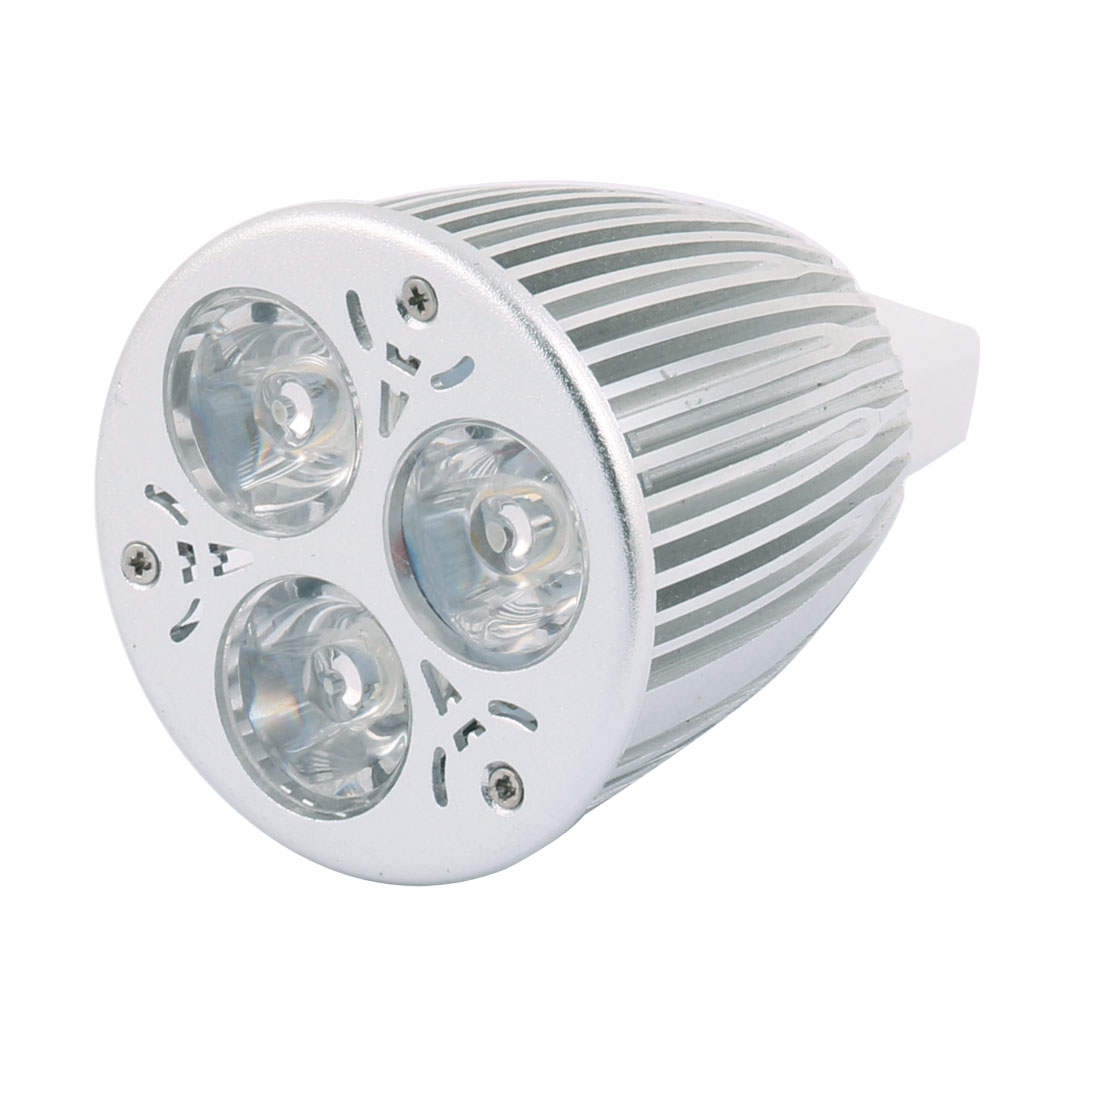 DC 12V 9W MR16 3 LEDs COB Spotlight Bulb Energy Saving Downlight Cool White